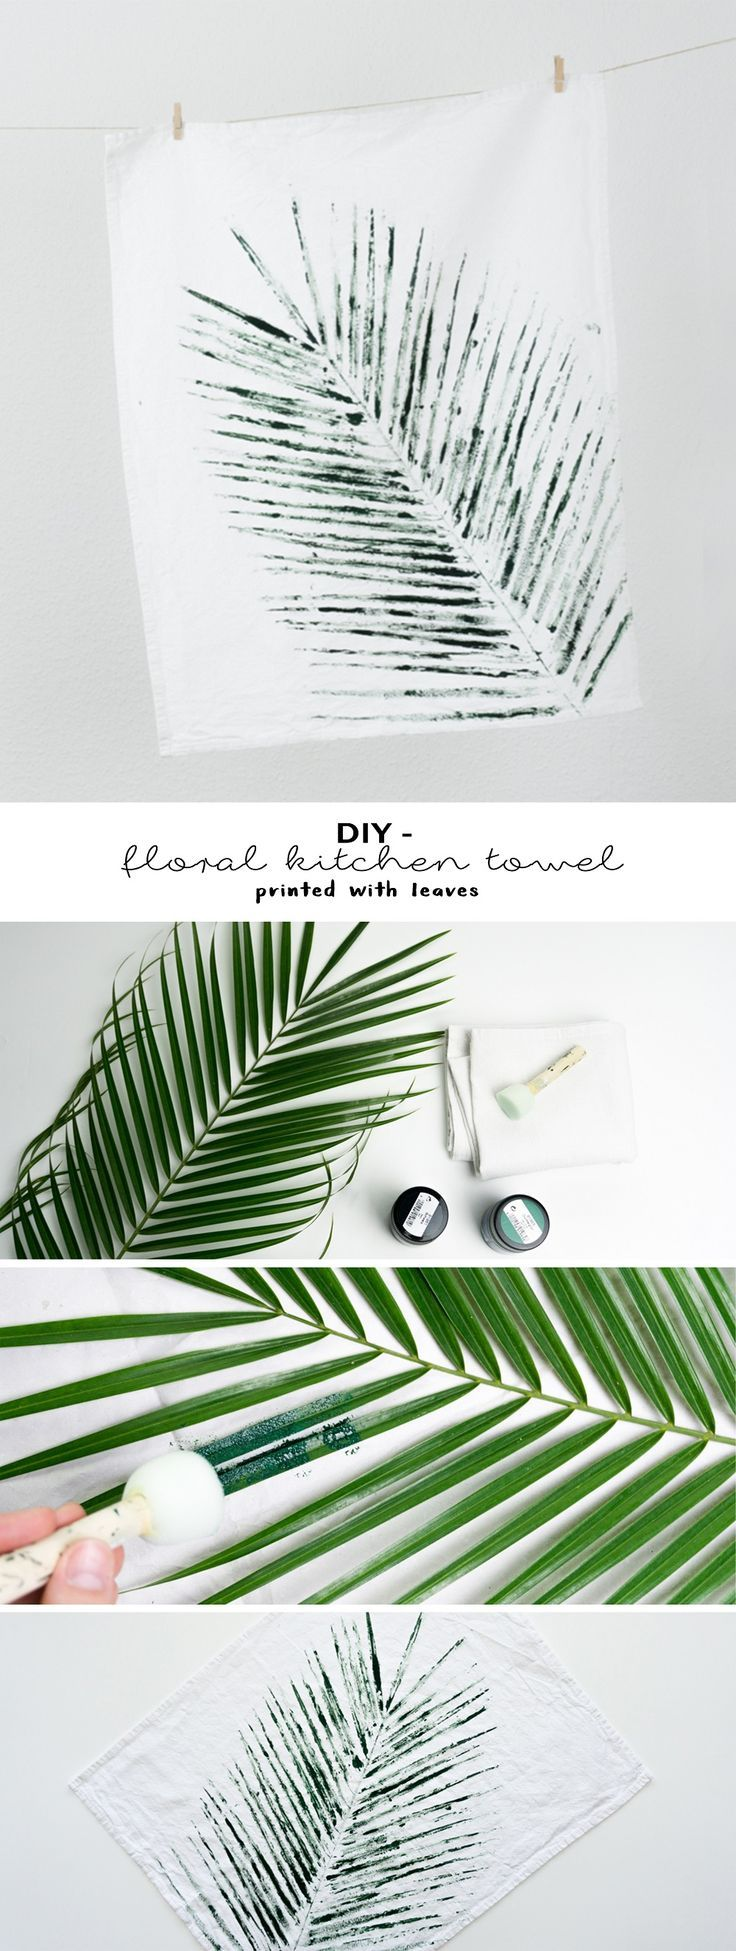 schereleimpapier: DIY Tutorial Geschirrtücher bedrucken mit Blättern | Do it yourself | Deko basteln | Urban Jungle | Palmblatt | kreative Ideen für die Küche | Geschenke | selber machen | bedrucken | Druck mit Pflanzen | kreative Anleitung auf dem Blog | DIY floral kitchen towel printed with leaves | crafting with plants